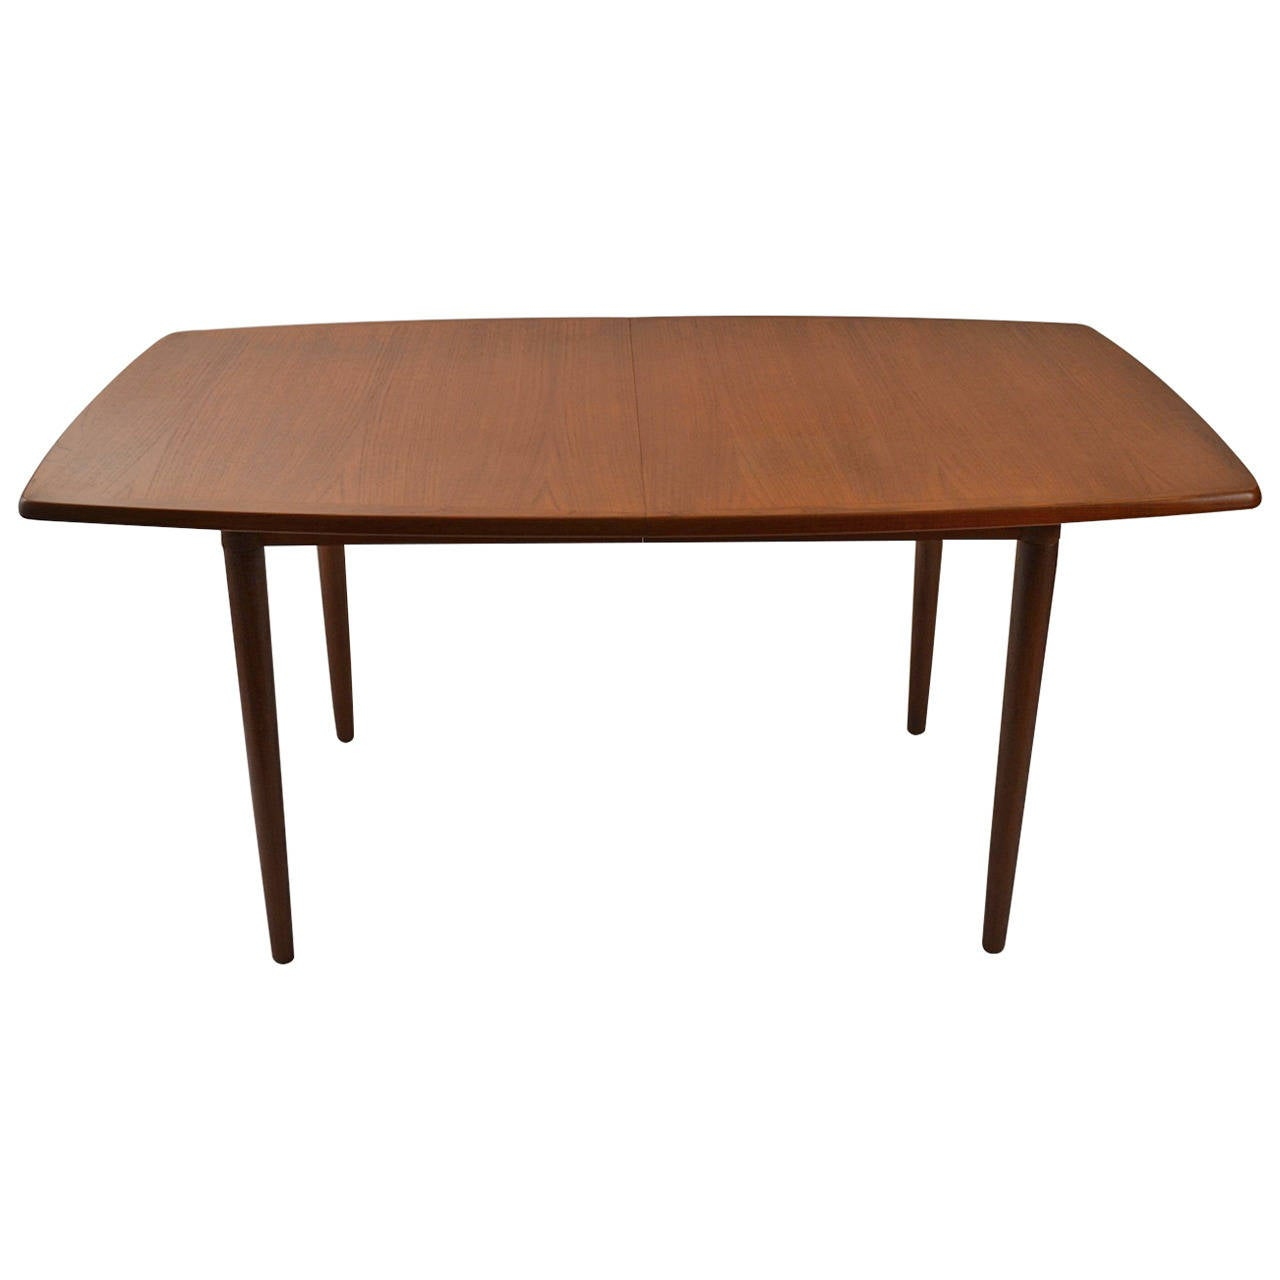 Danish modern teak dining table with two leaves at 1stdibs for Modern dining table